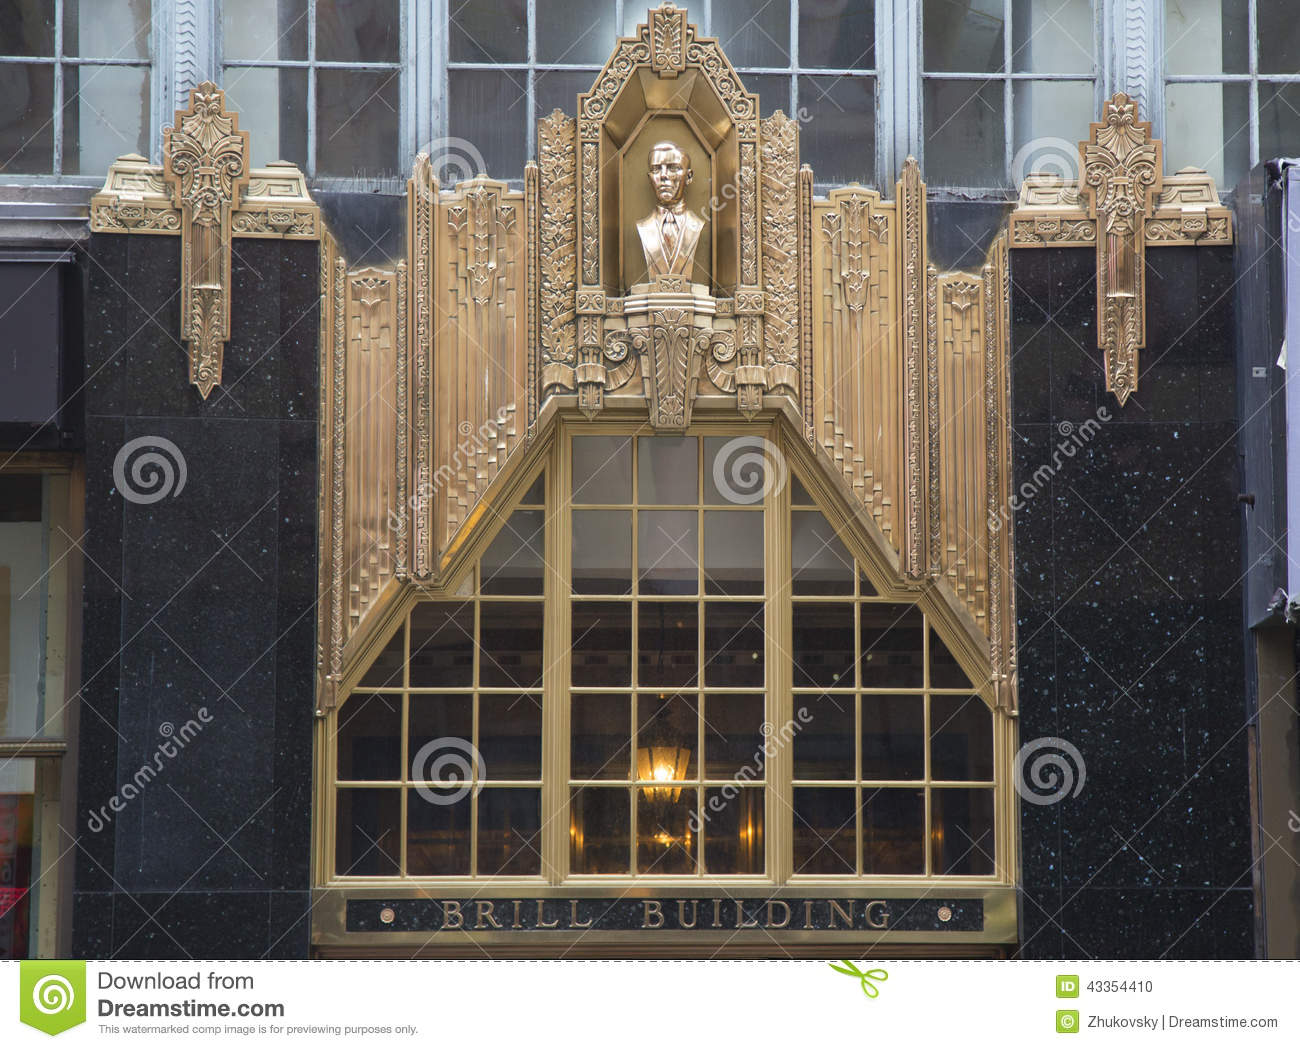 Half Empty but Full of History, Brill Building Seeks ...